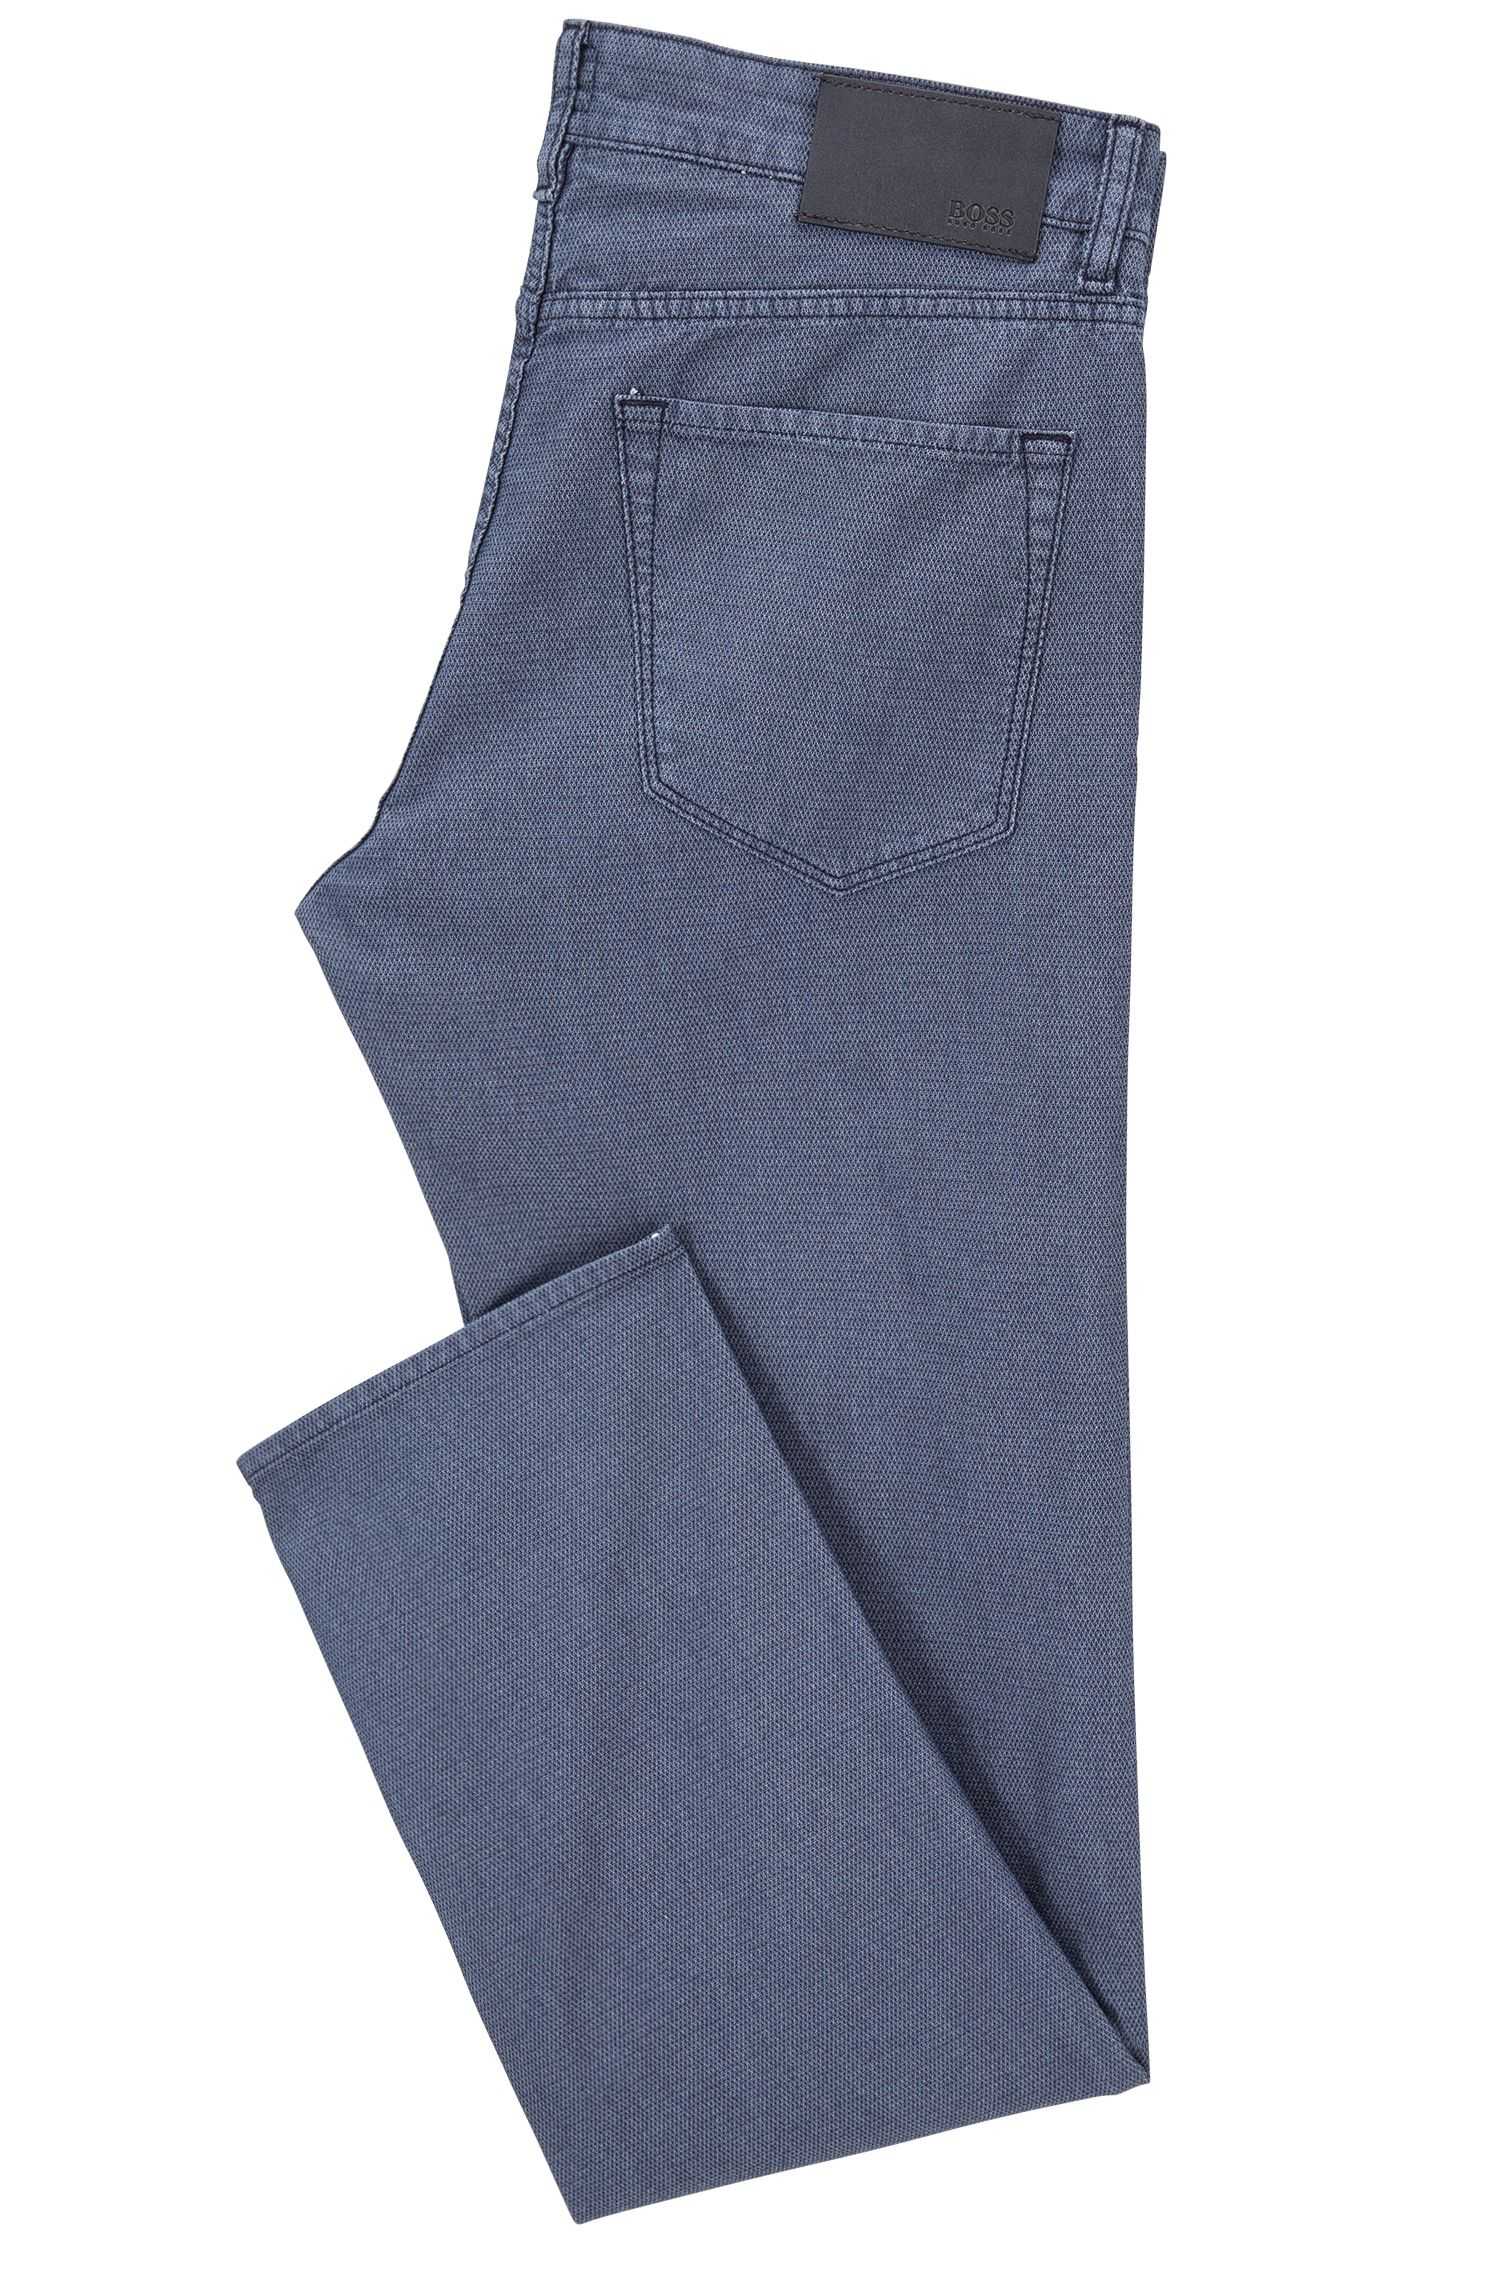 Cotton Blend Pant, Regular Fit | Maine, Dark Blue